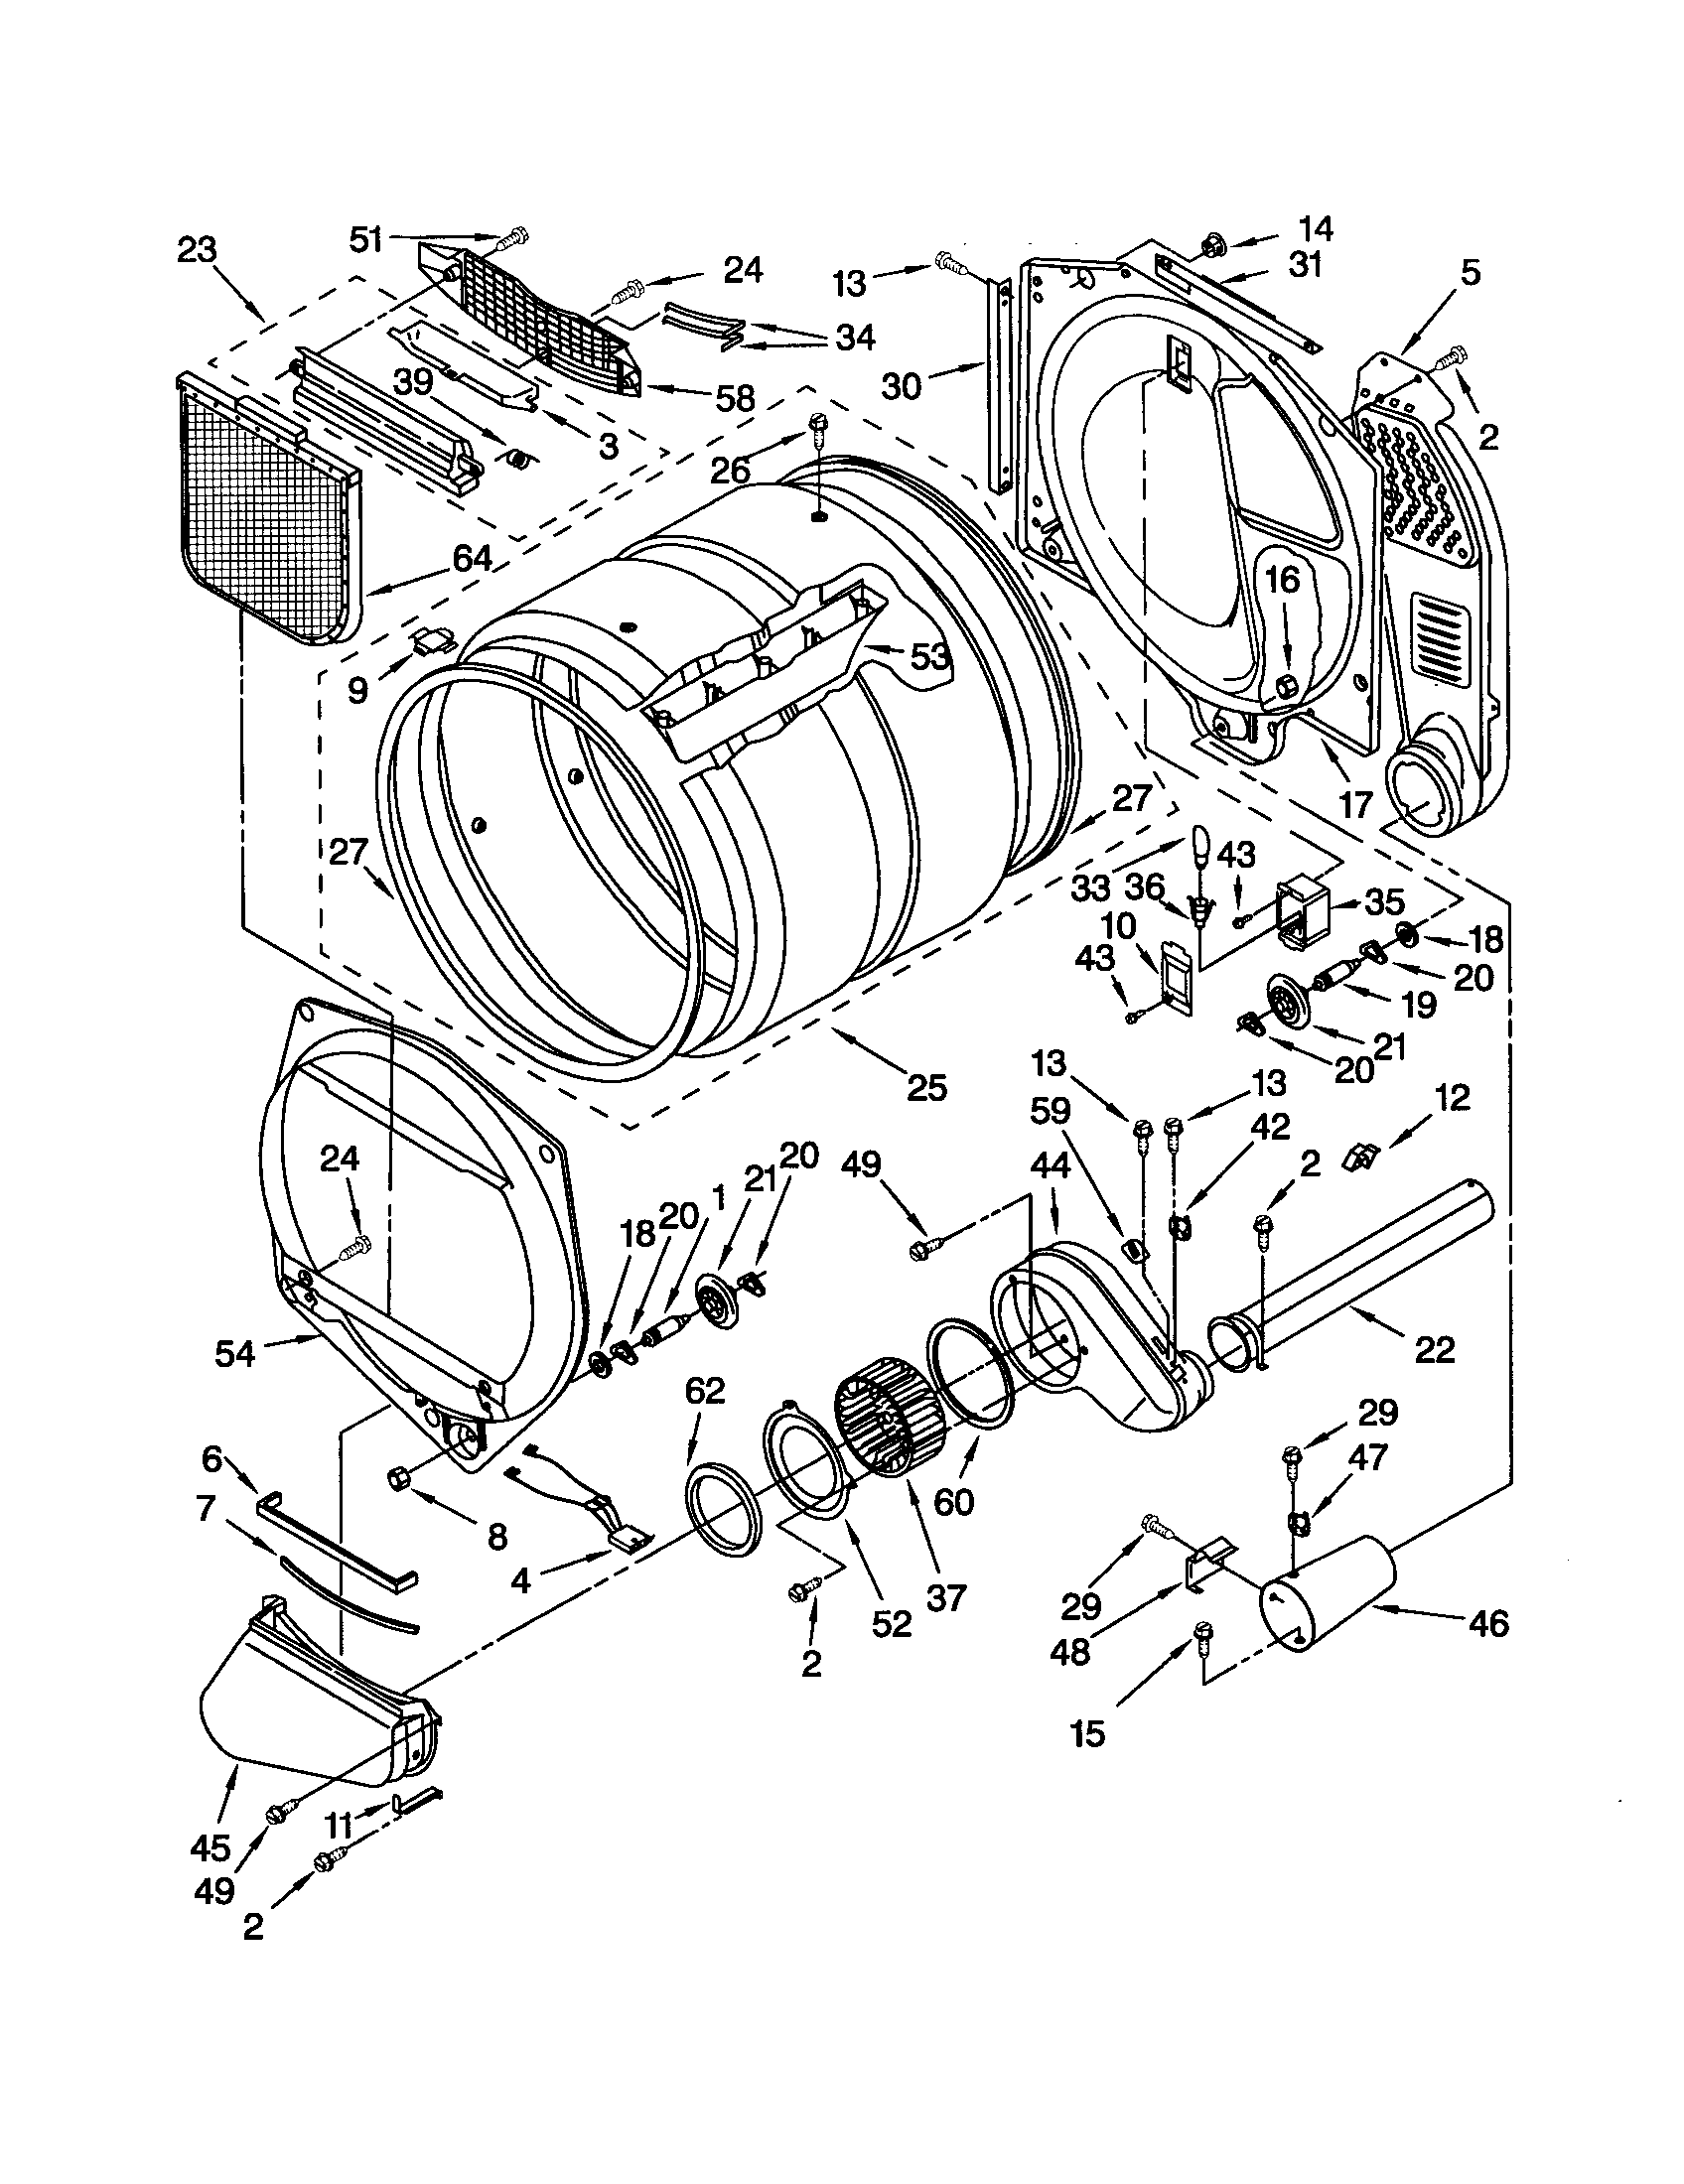 hight resolution of kenmore model 11092826102 residential dryer genuine parts kenmore dryer schematics sears dryer diagram